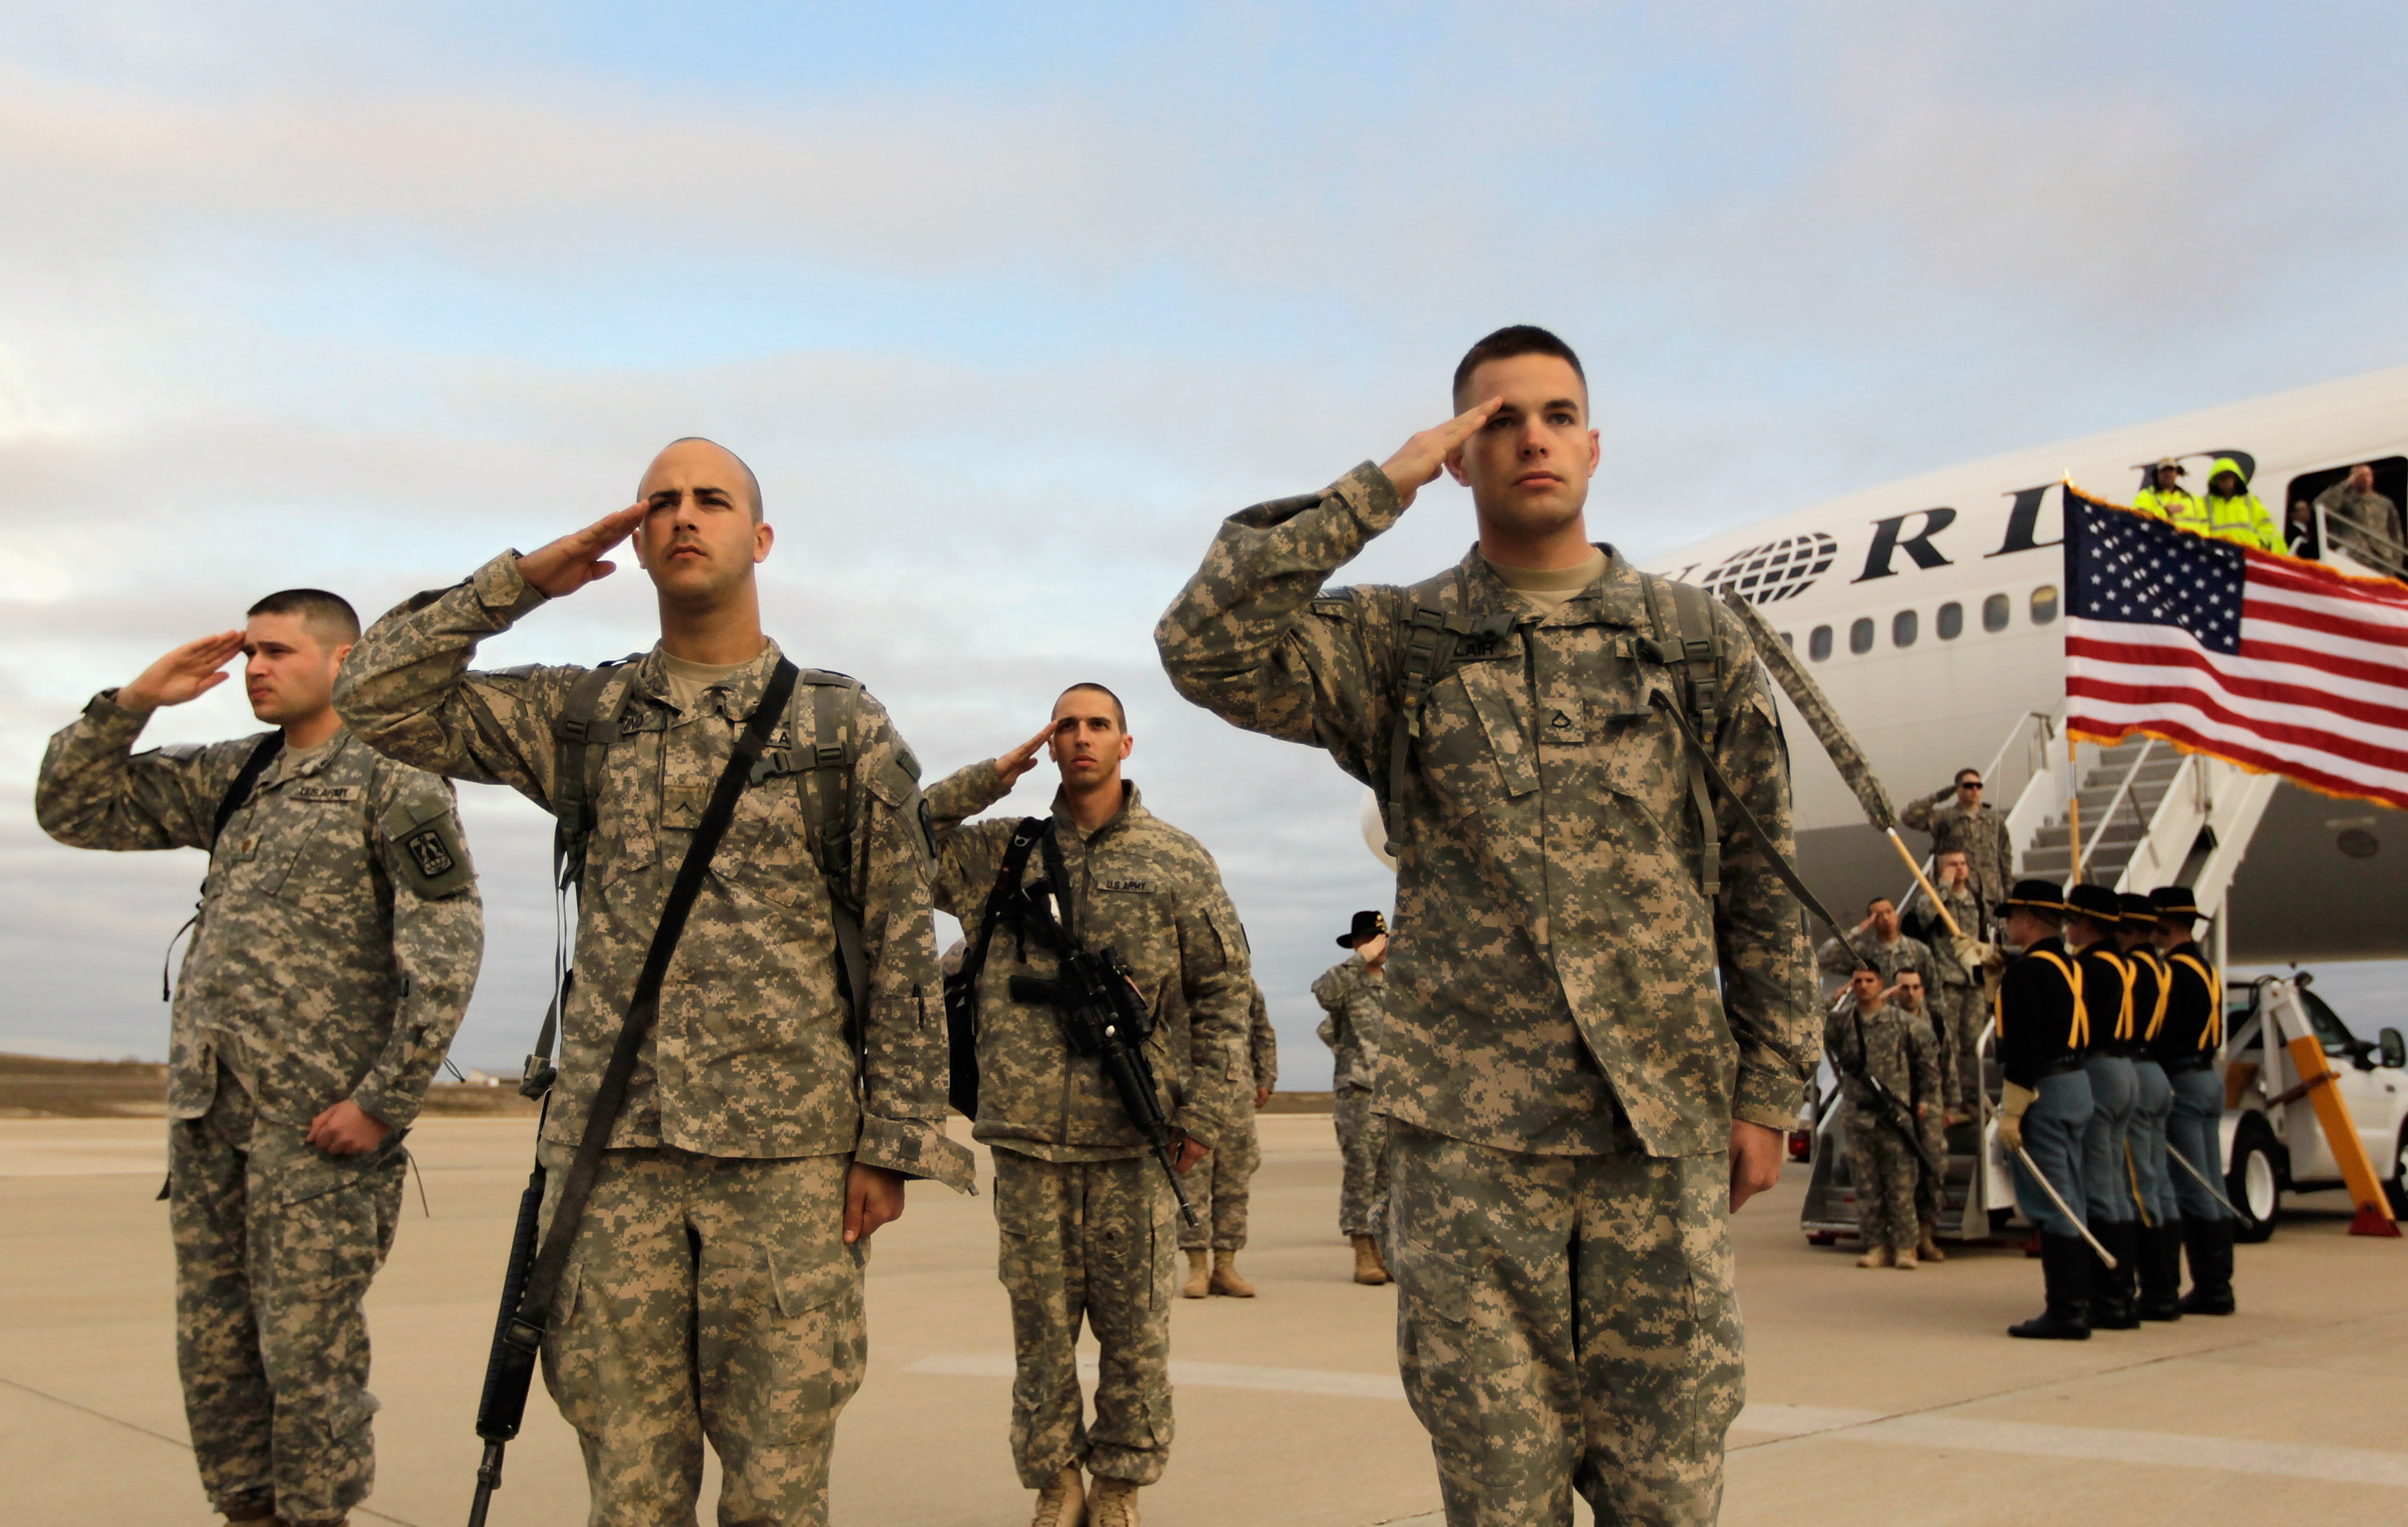 FORT HOOD, TX - DECEMBER 16: U.S. Army soldiers from the 2-82 Field Artillery, 3rd Brigade, 1st Cavalry Division, salute after walking off the plane as they arrive at their home base of Fort Hood, Texas after being part of one of the last American combat units to exit from Iraq on December 16, 2011 in Fort Hood, Texas. The U.S. military formally ended its mission in Iraq after eight years of war and the overthrow of Saddam Hussein. (Photo by Joe Raedle/Getty Images)